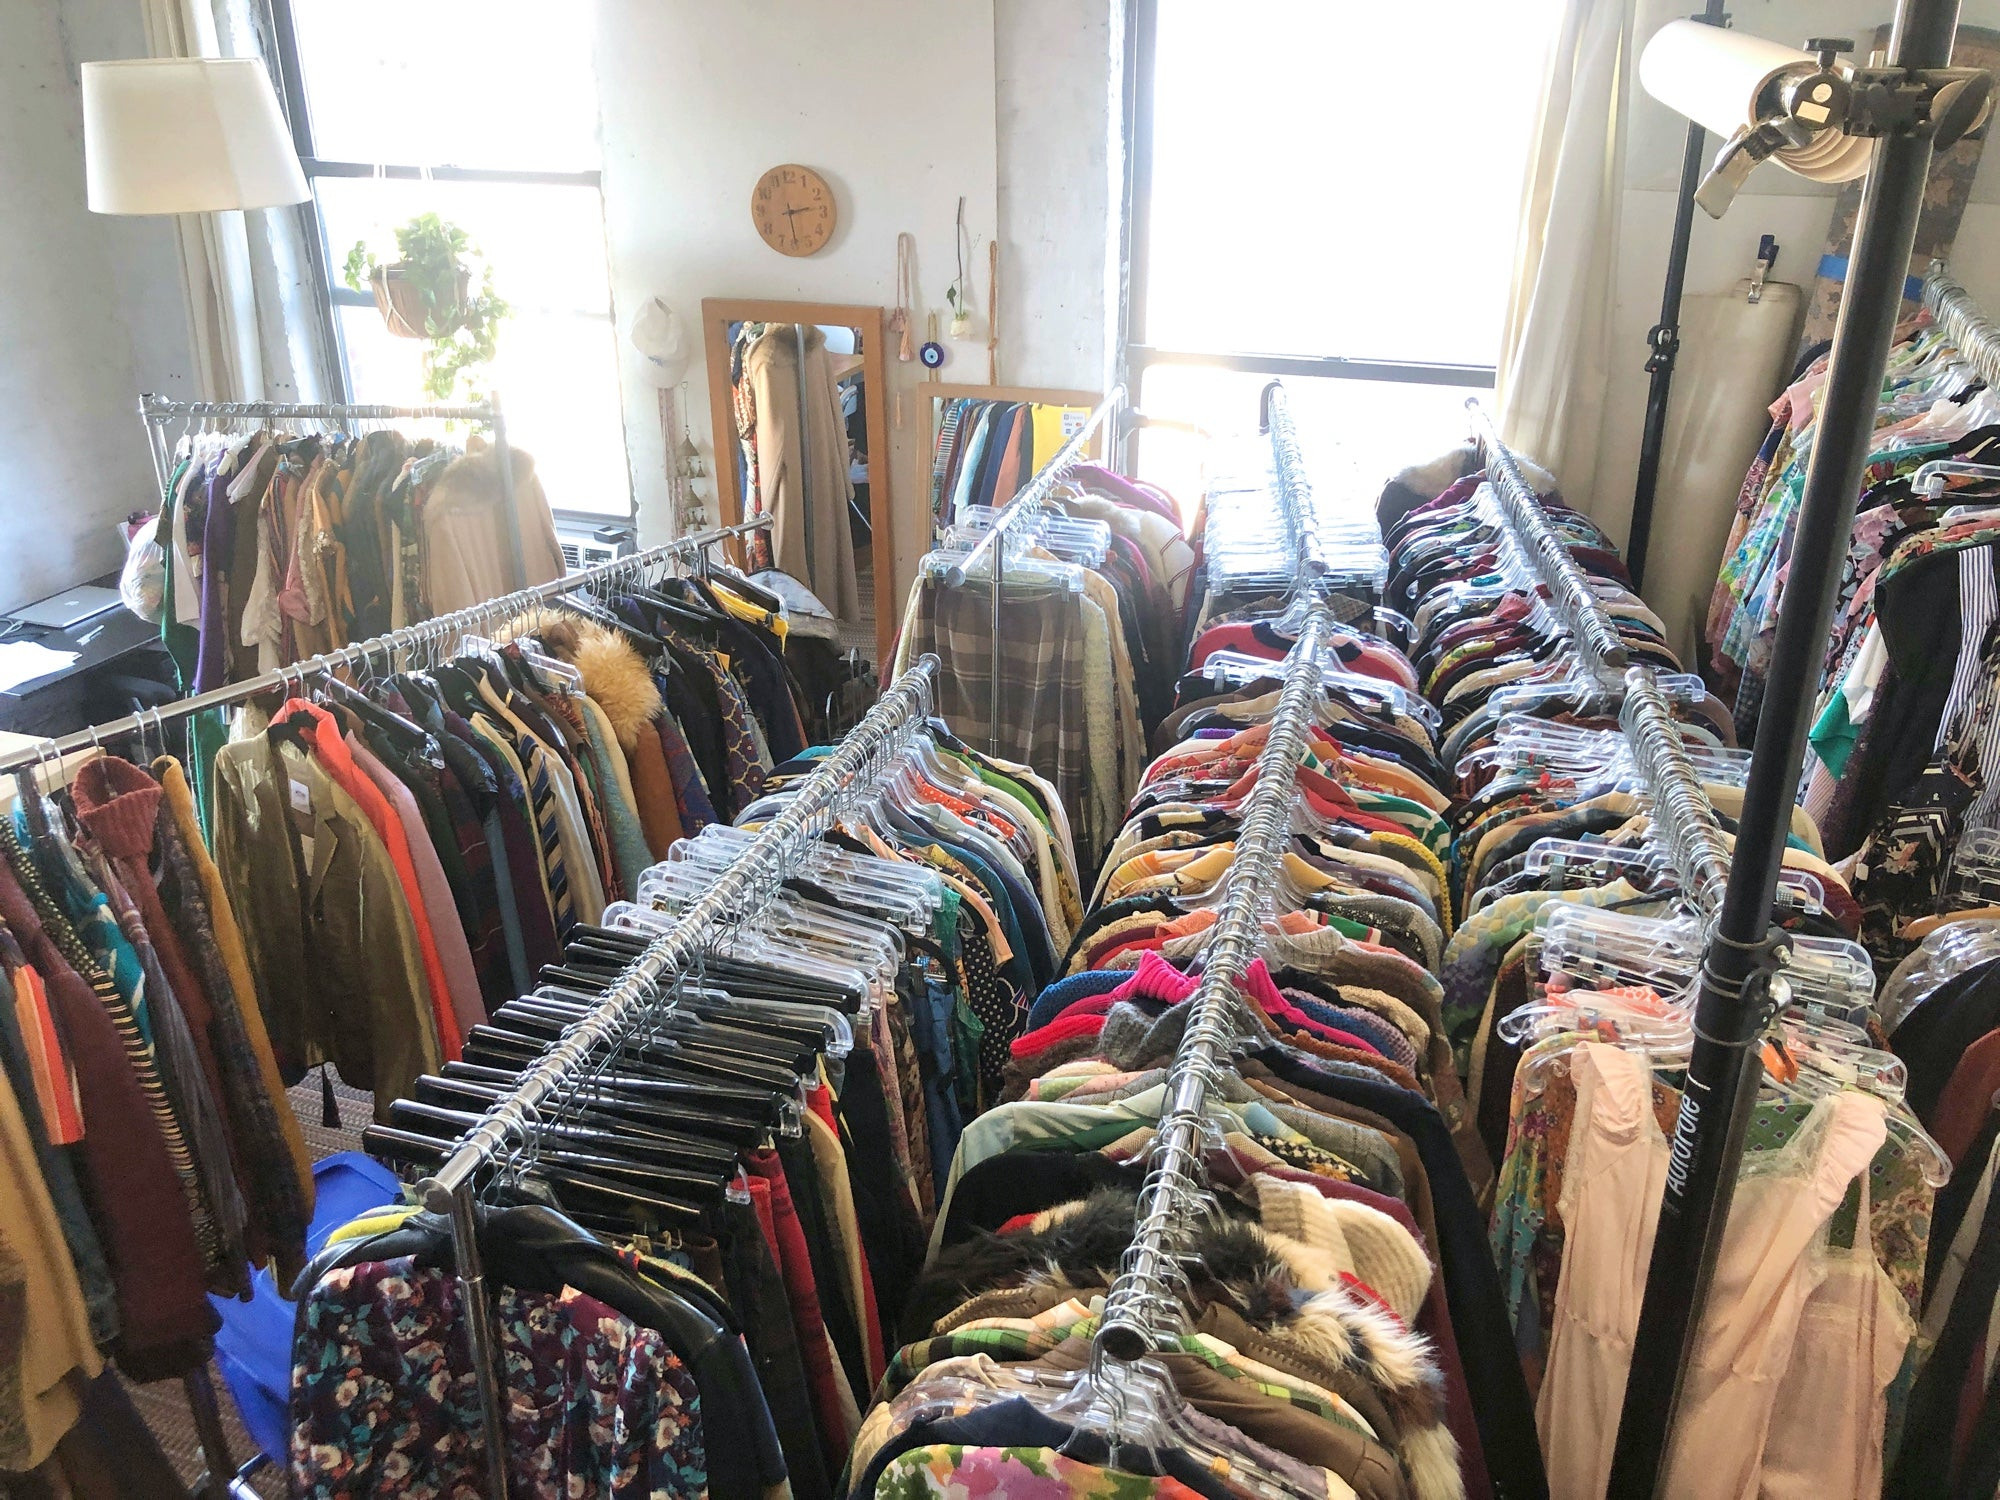 Room filled with racks of vintage clothing